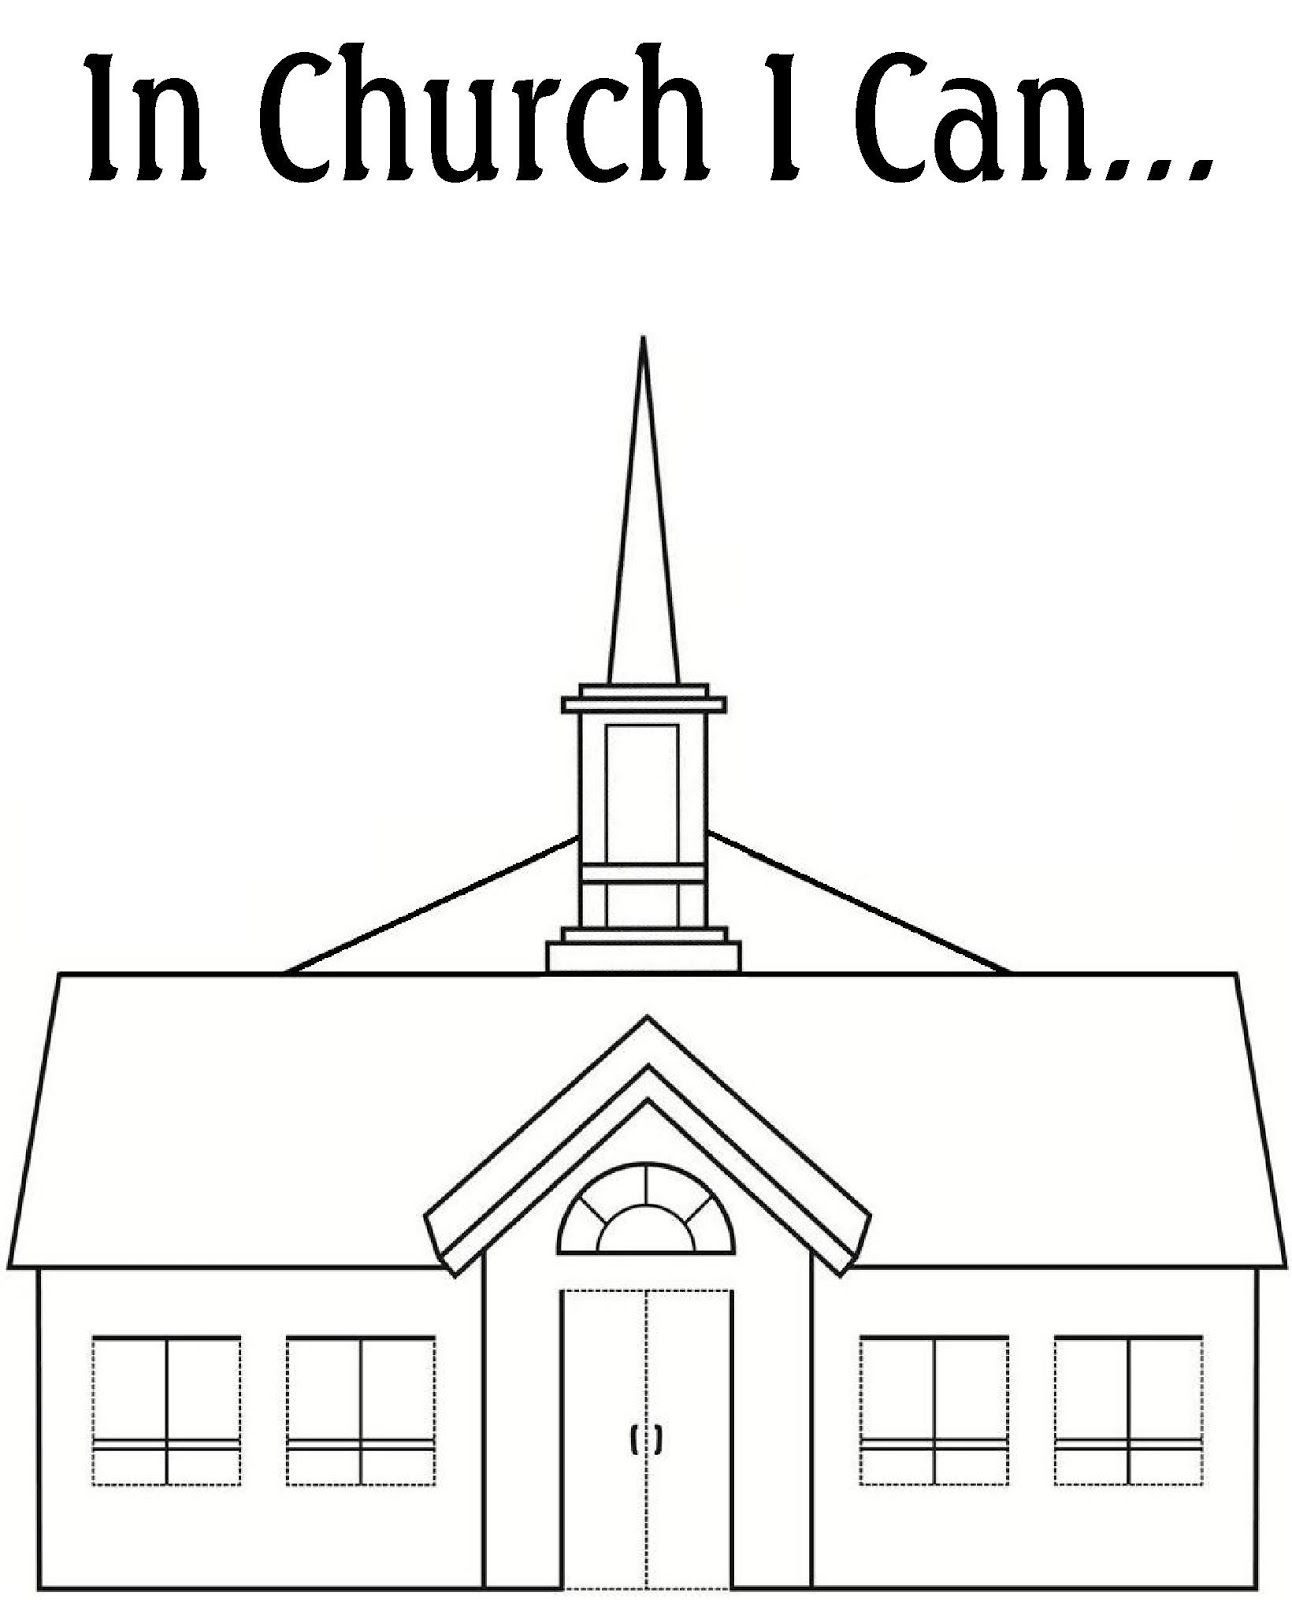 Free Printable Church Coloring Page Download It At Https Museprintables Com Download Coloring Page Church Coloring Pages Color Bible Activities